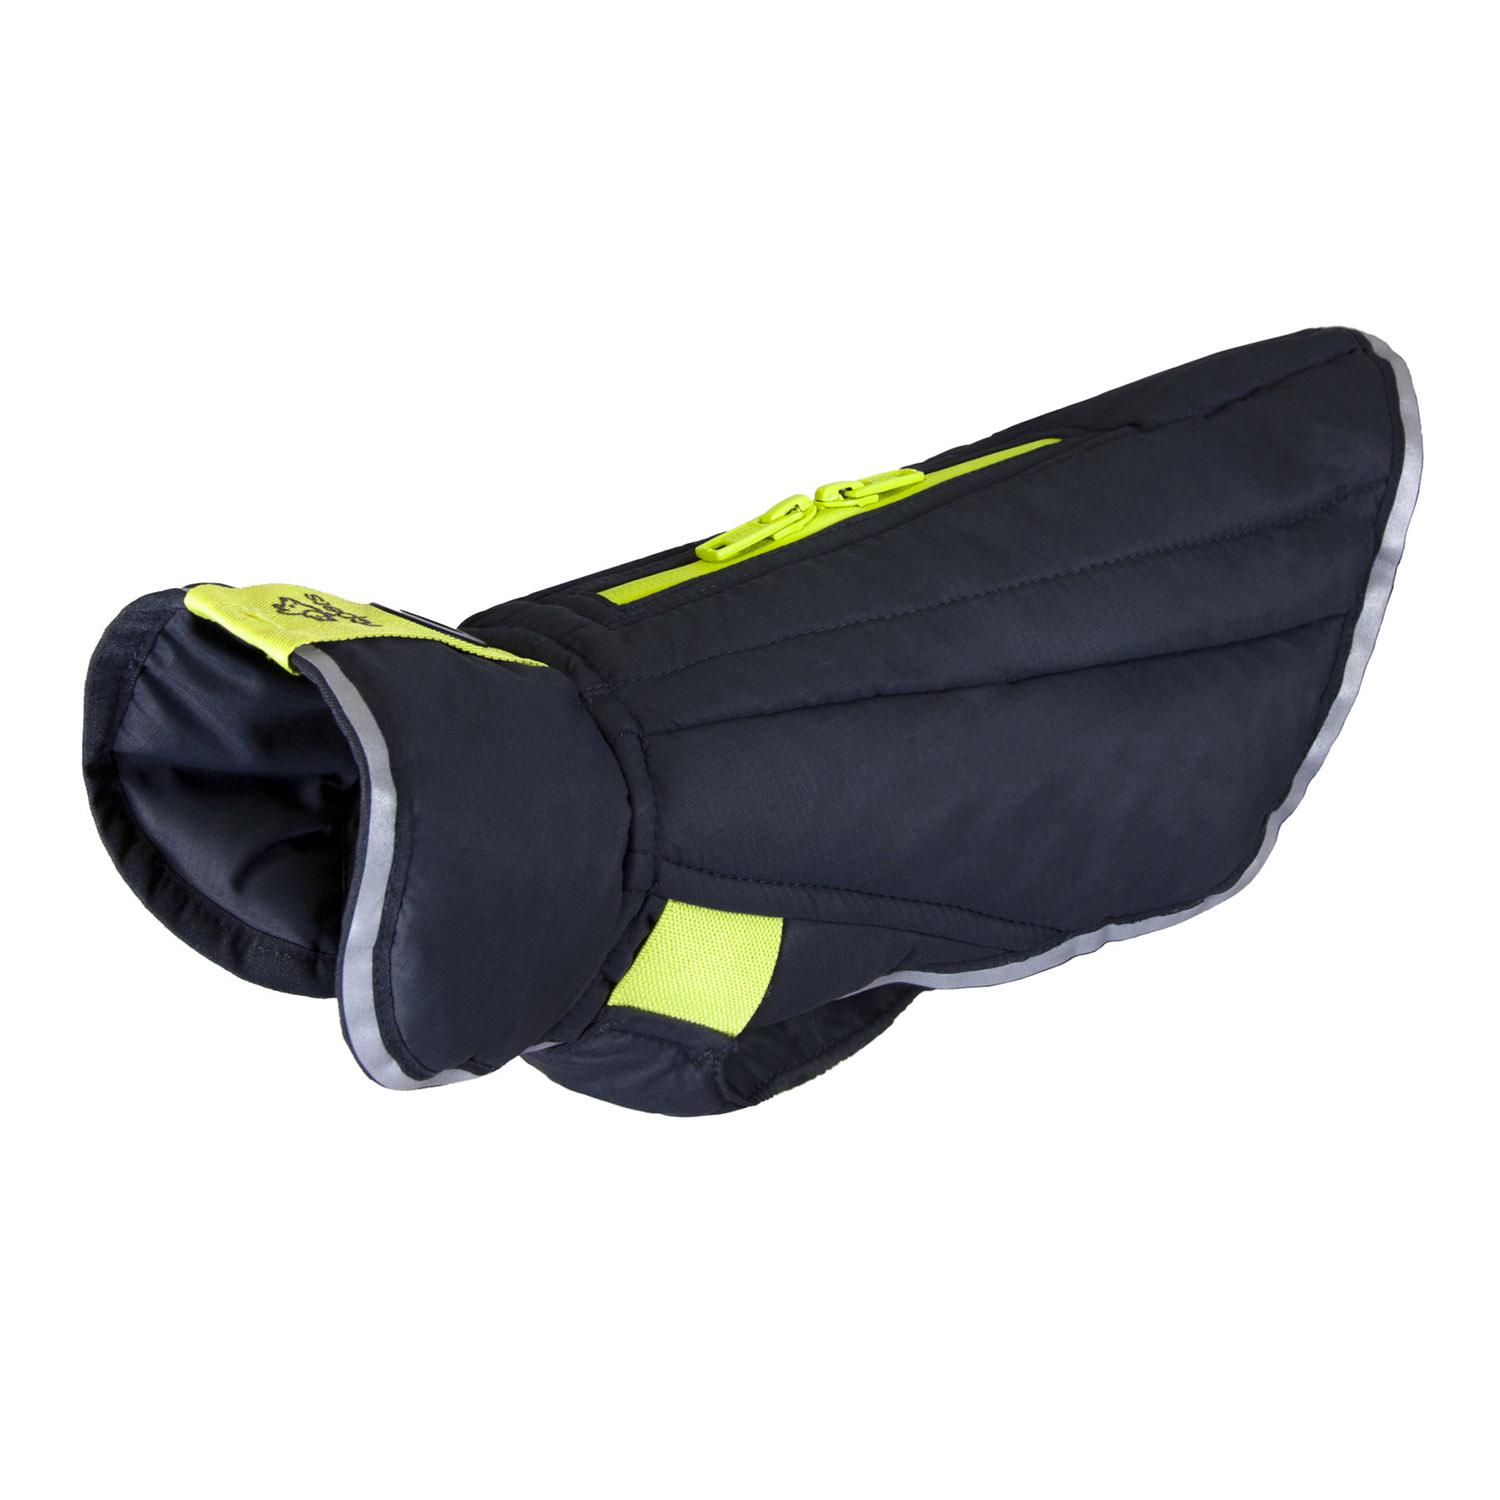 Nimbus Puffer Dog Coat - Graphite and Lime